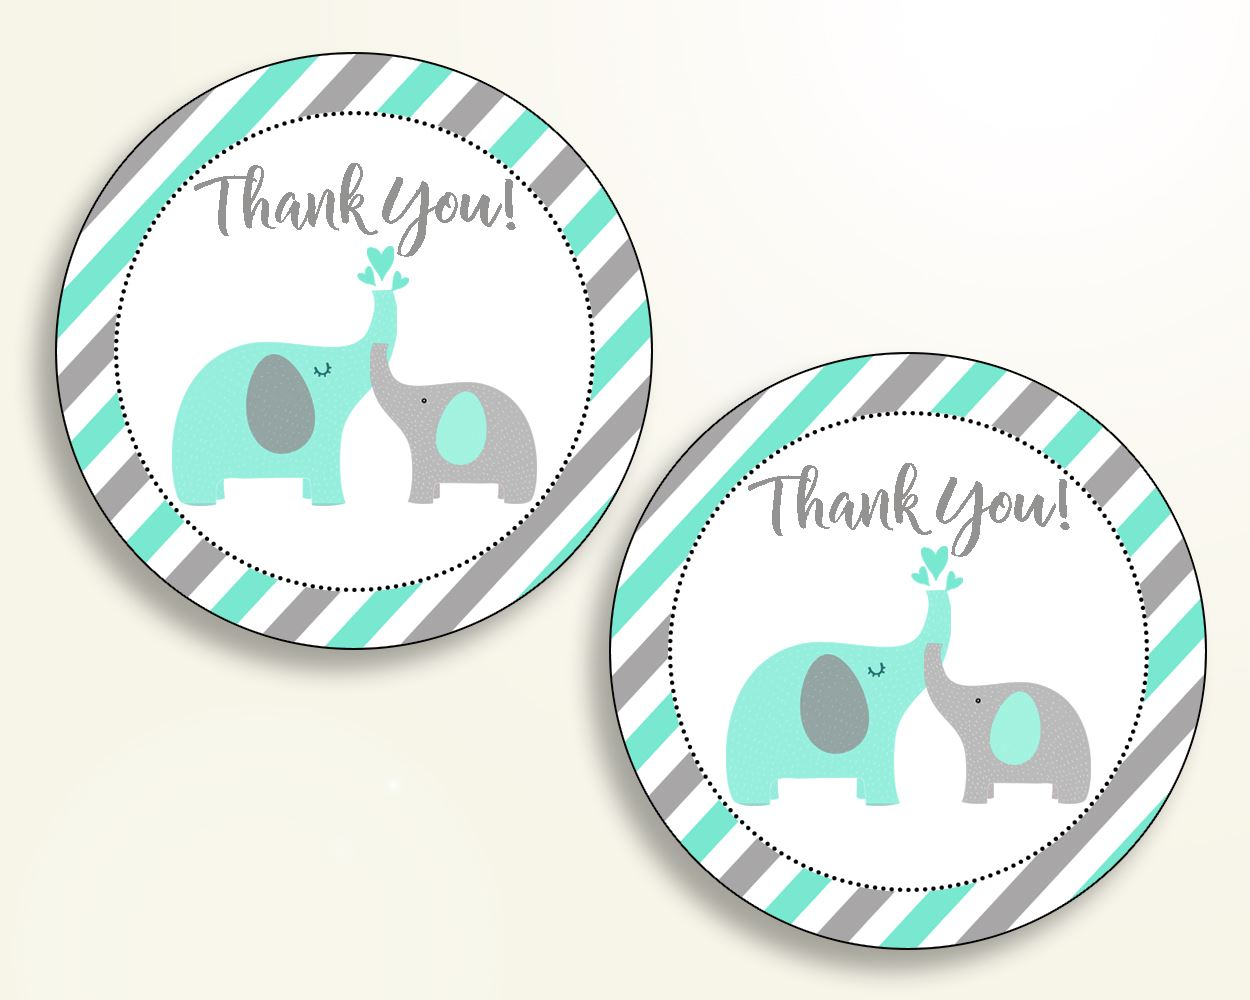 Favor Tags Baby Shower Favor Tags Turquoise Baby Shower Favor Tags Baby Shower Elephant Favor Tags Green Gray party organising baby 5DMNH - Digital Product